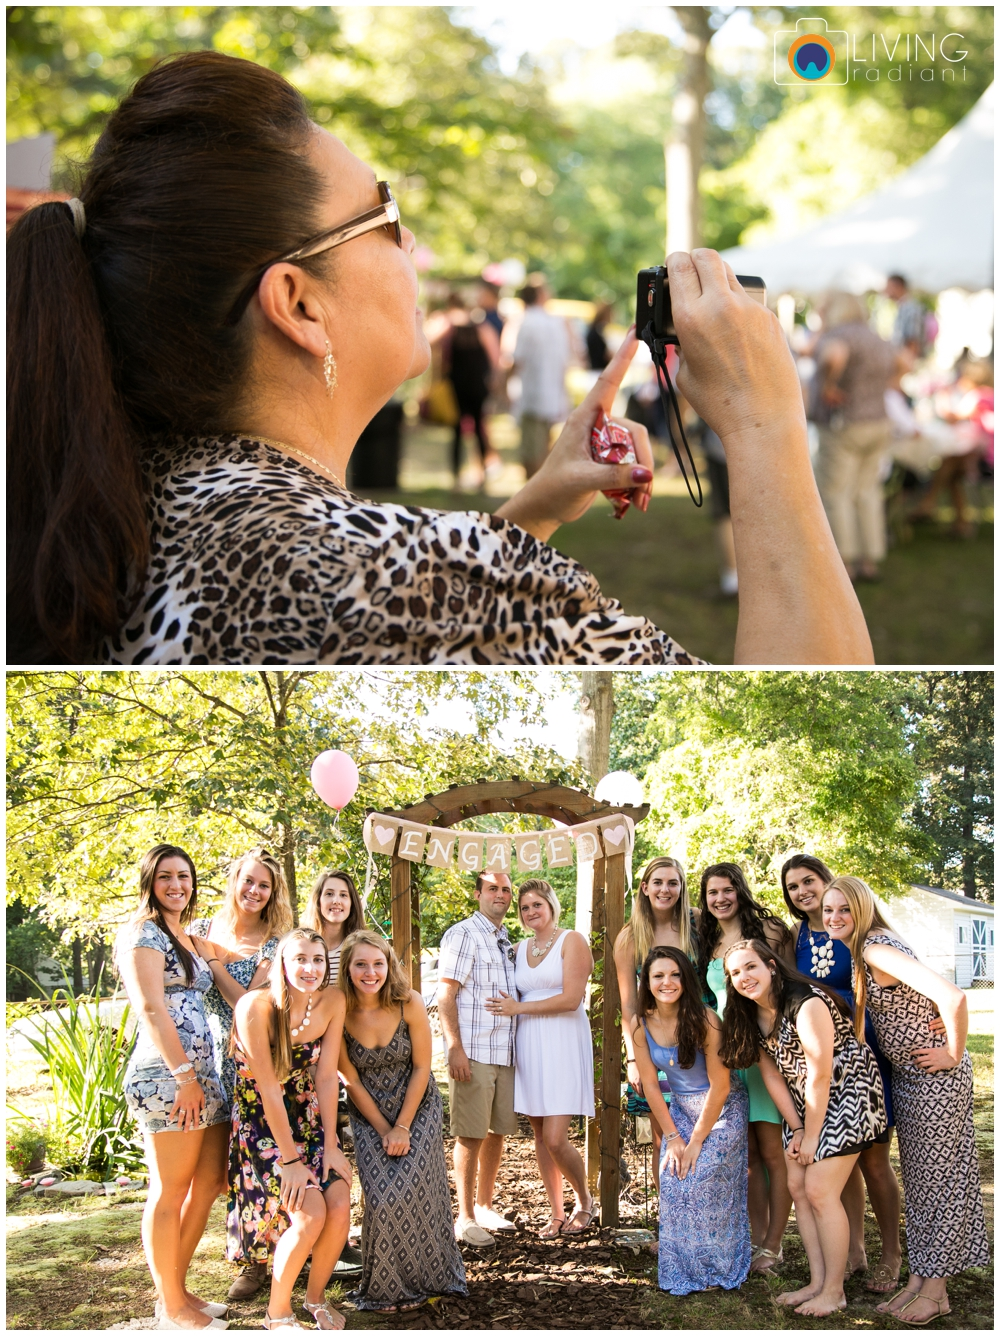 brent-laura-engagement-party-baltimore-living-radiant-photography_0033.jpg